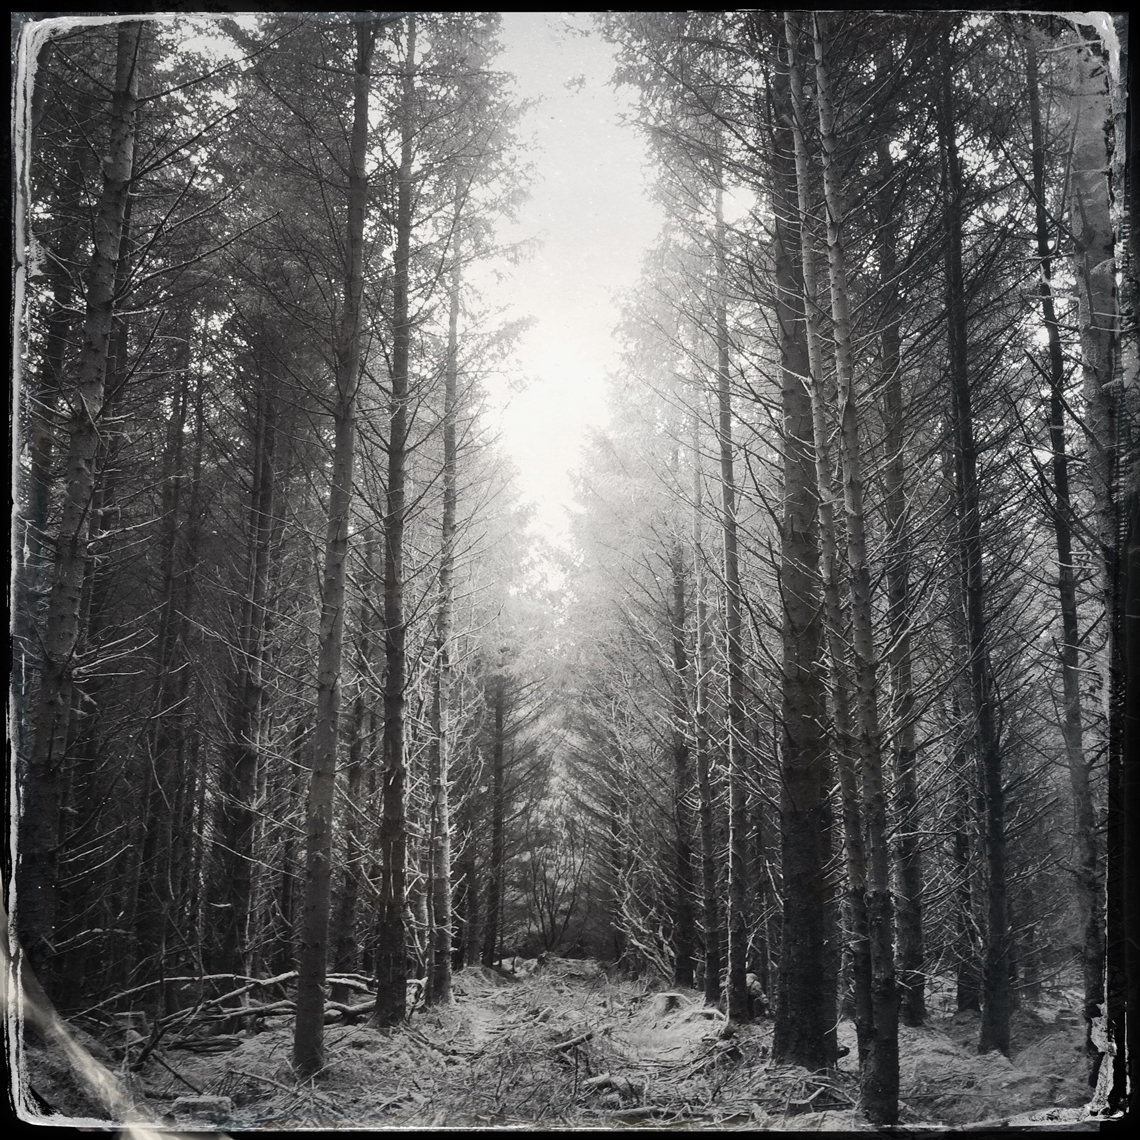 Jon Wyatt Photography - Sanctuary - Part II - woodland paths in Cornwall & Devon